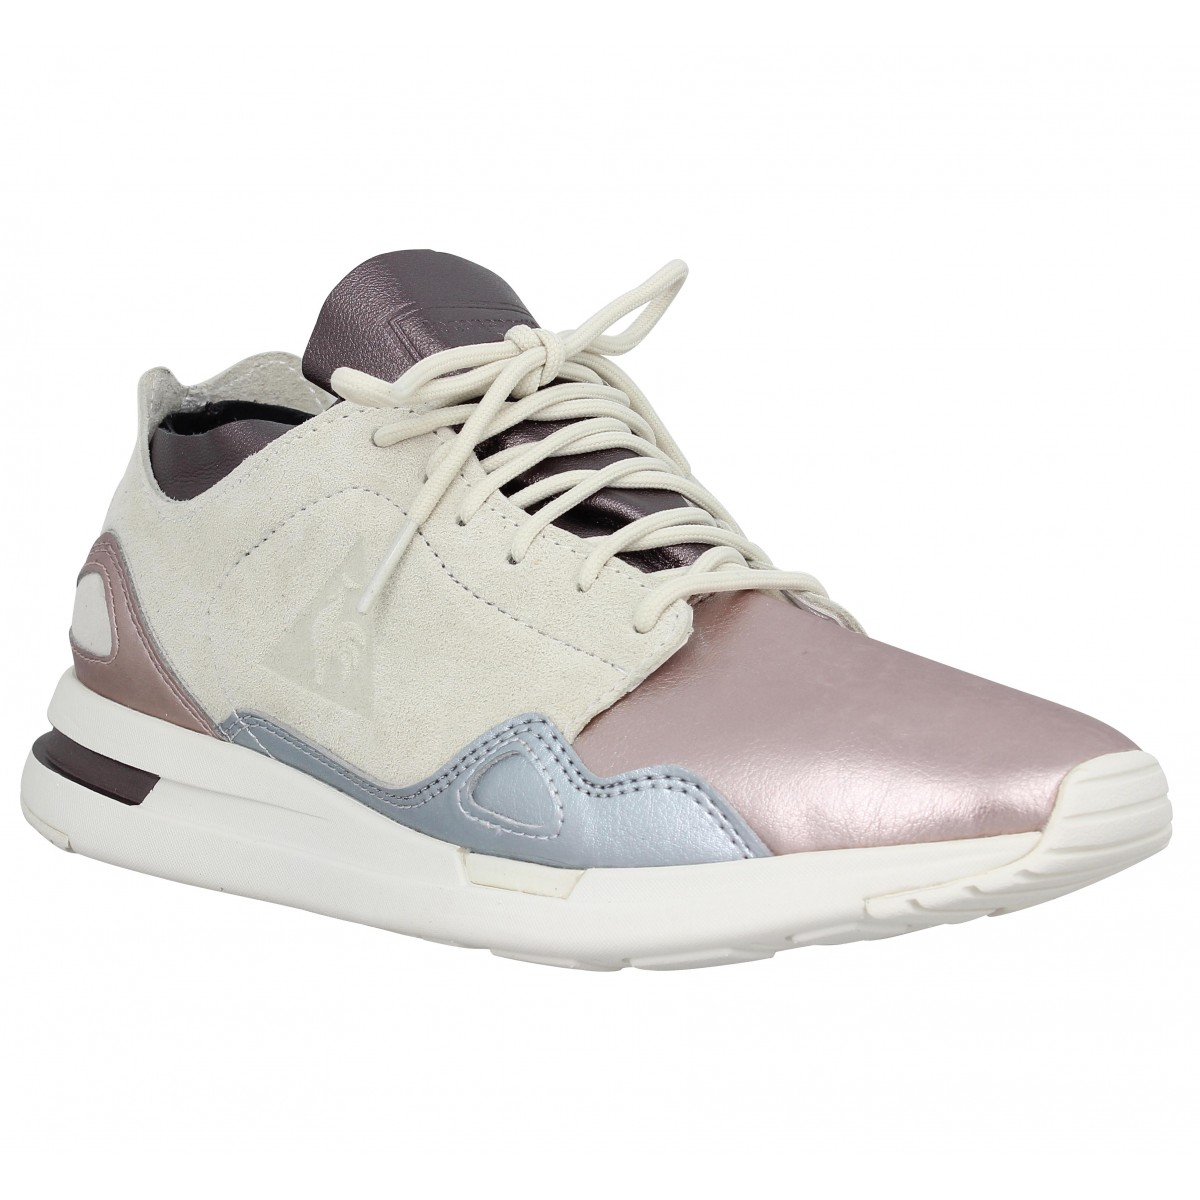 Baskets LE COQ SPORTIF Lcs R Flow velours toile Femme Multi